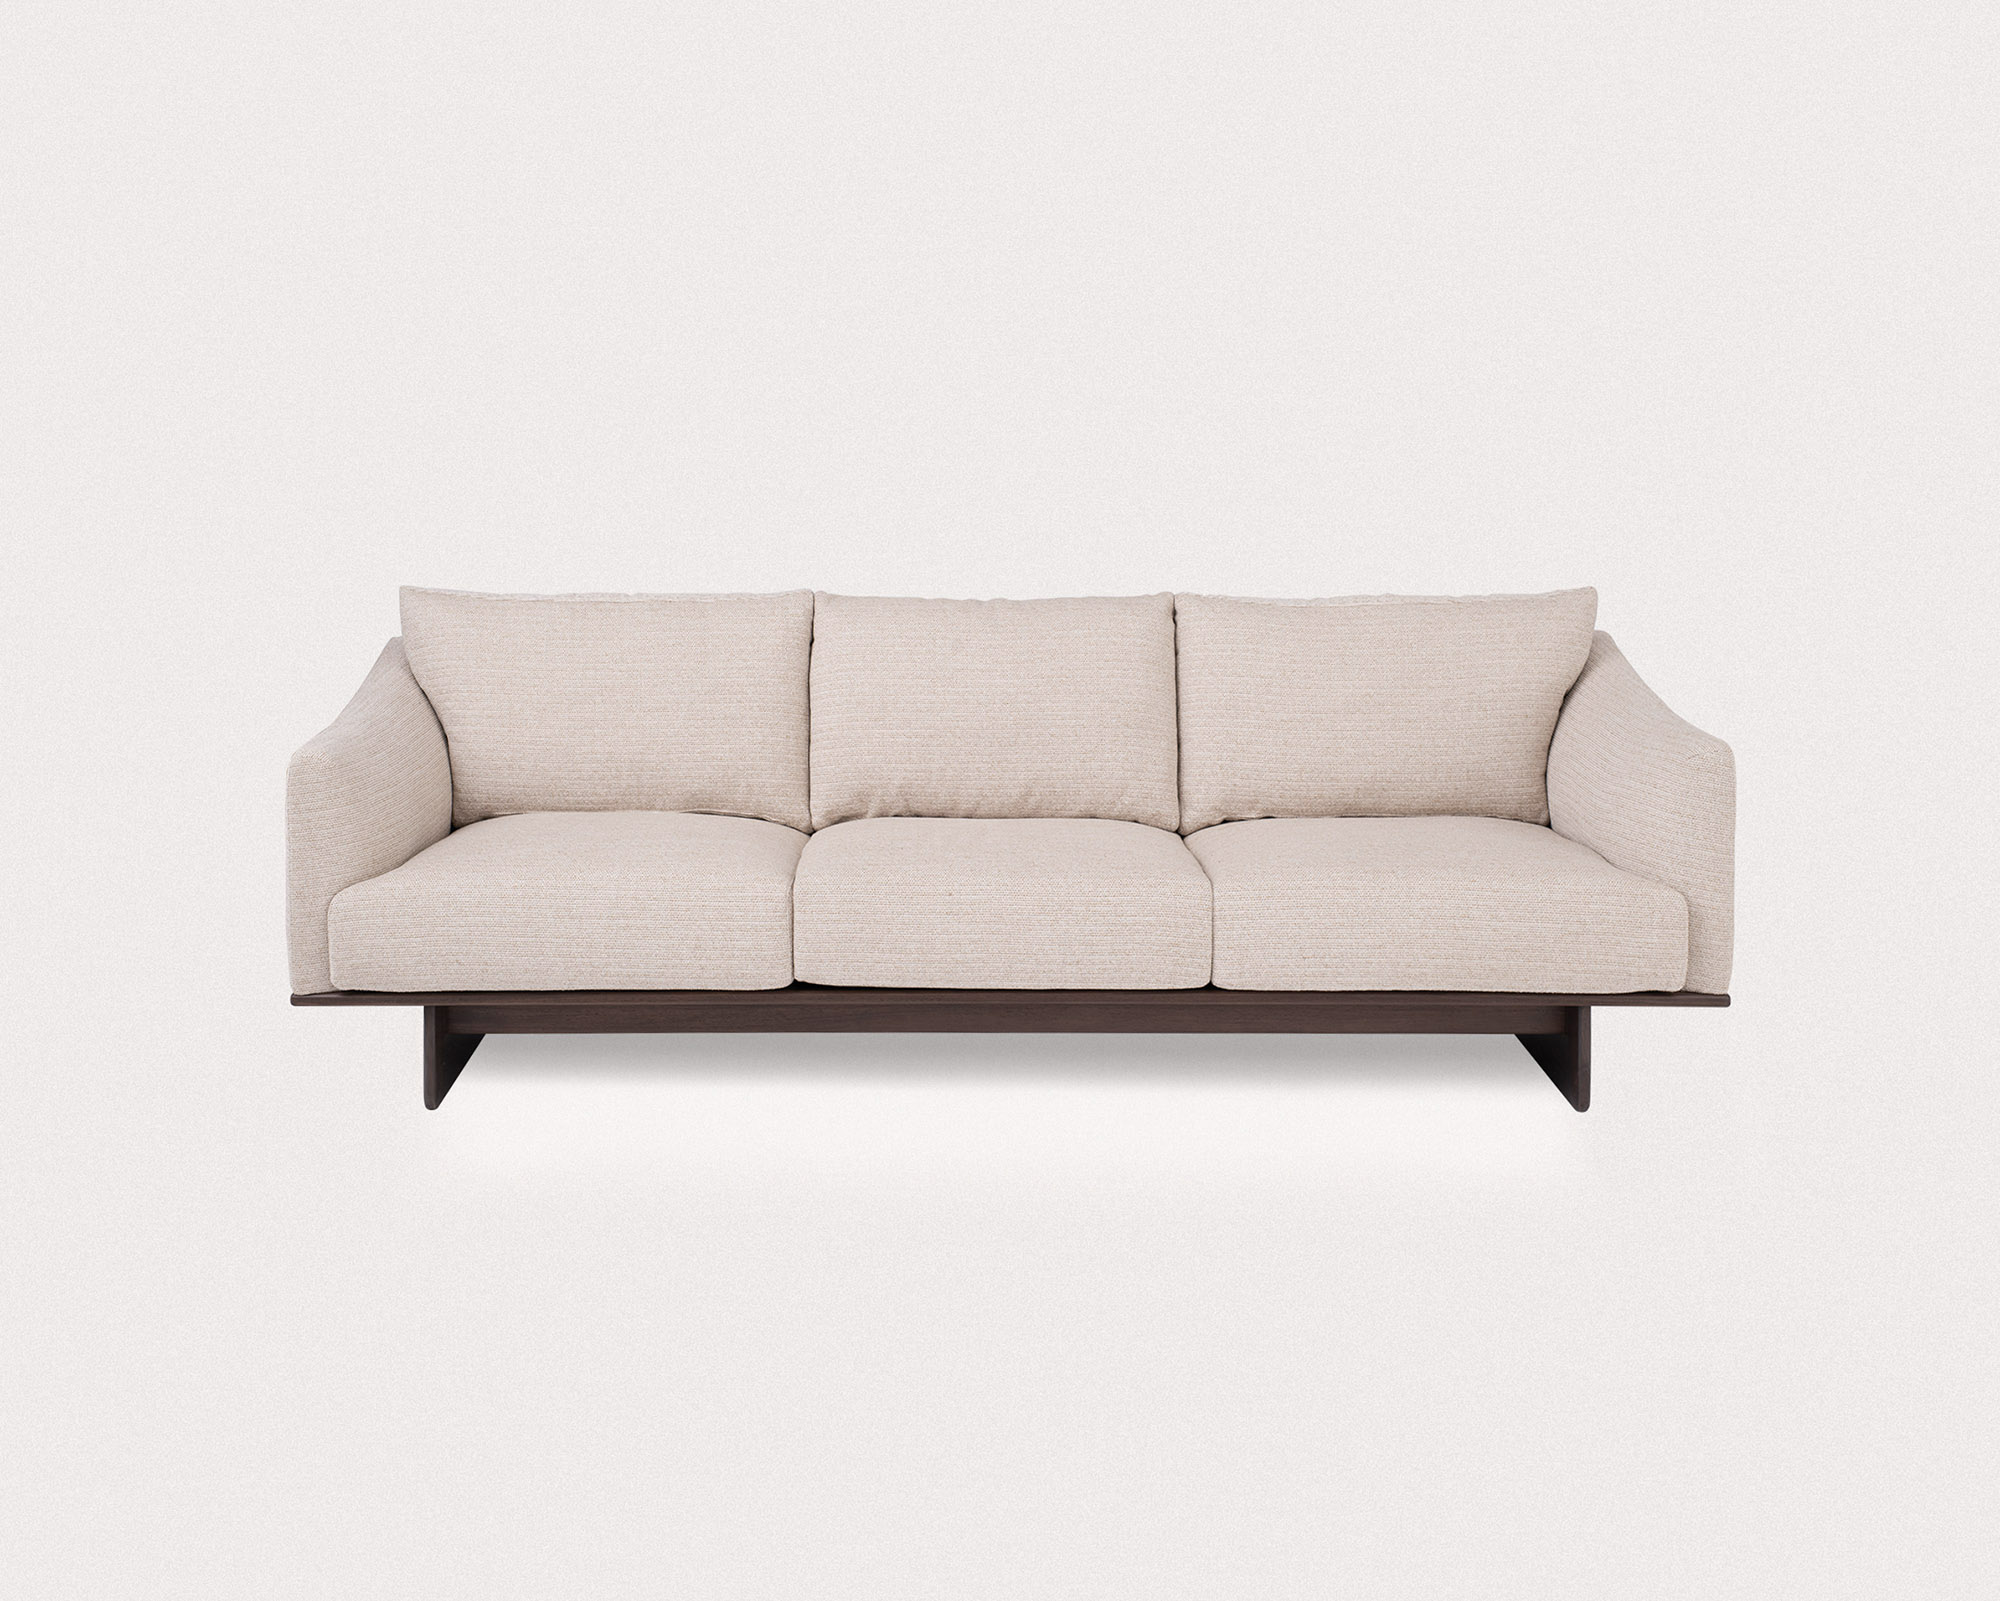 Grade-LargeSofa_Savanna202_walnut-2_2000x1601_rev